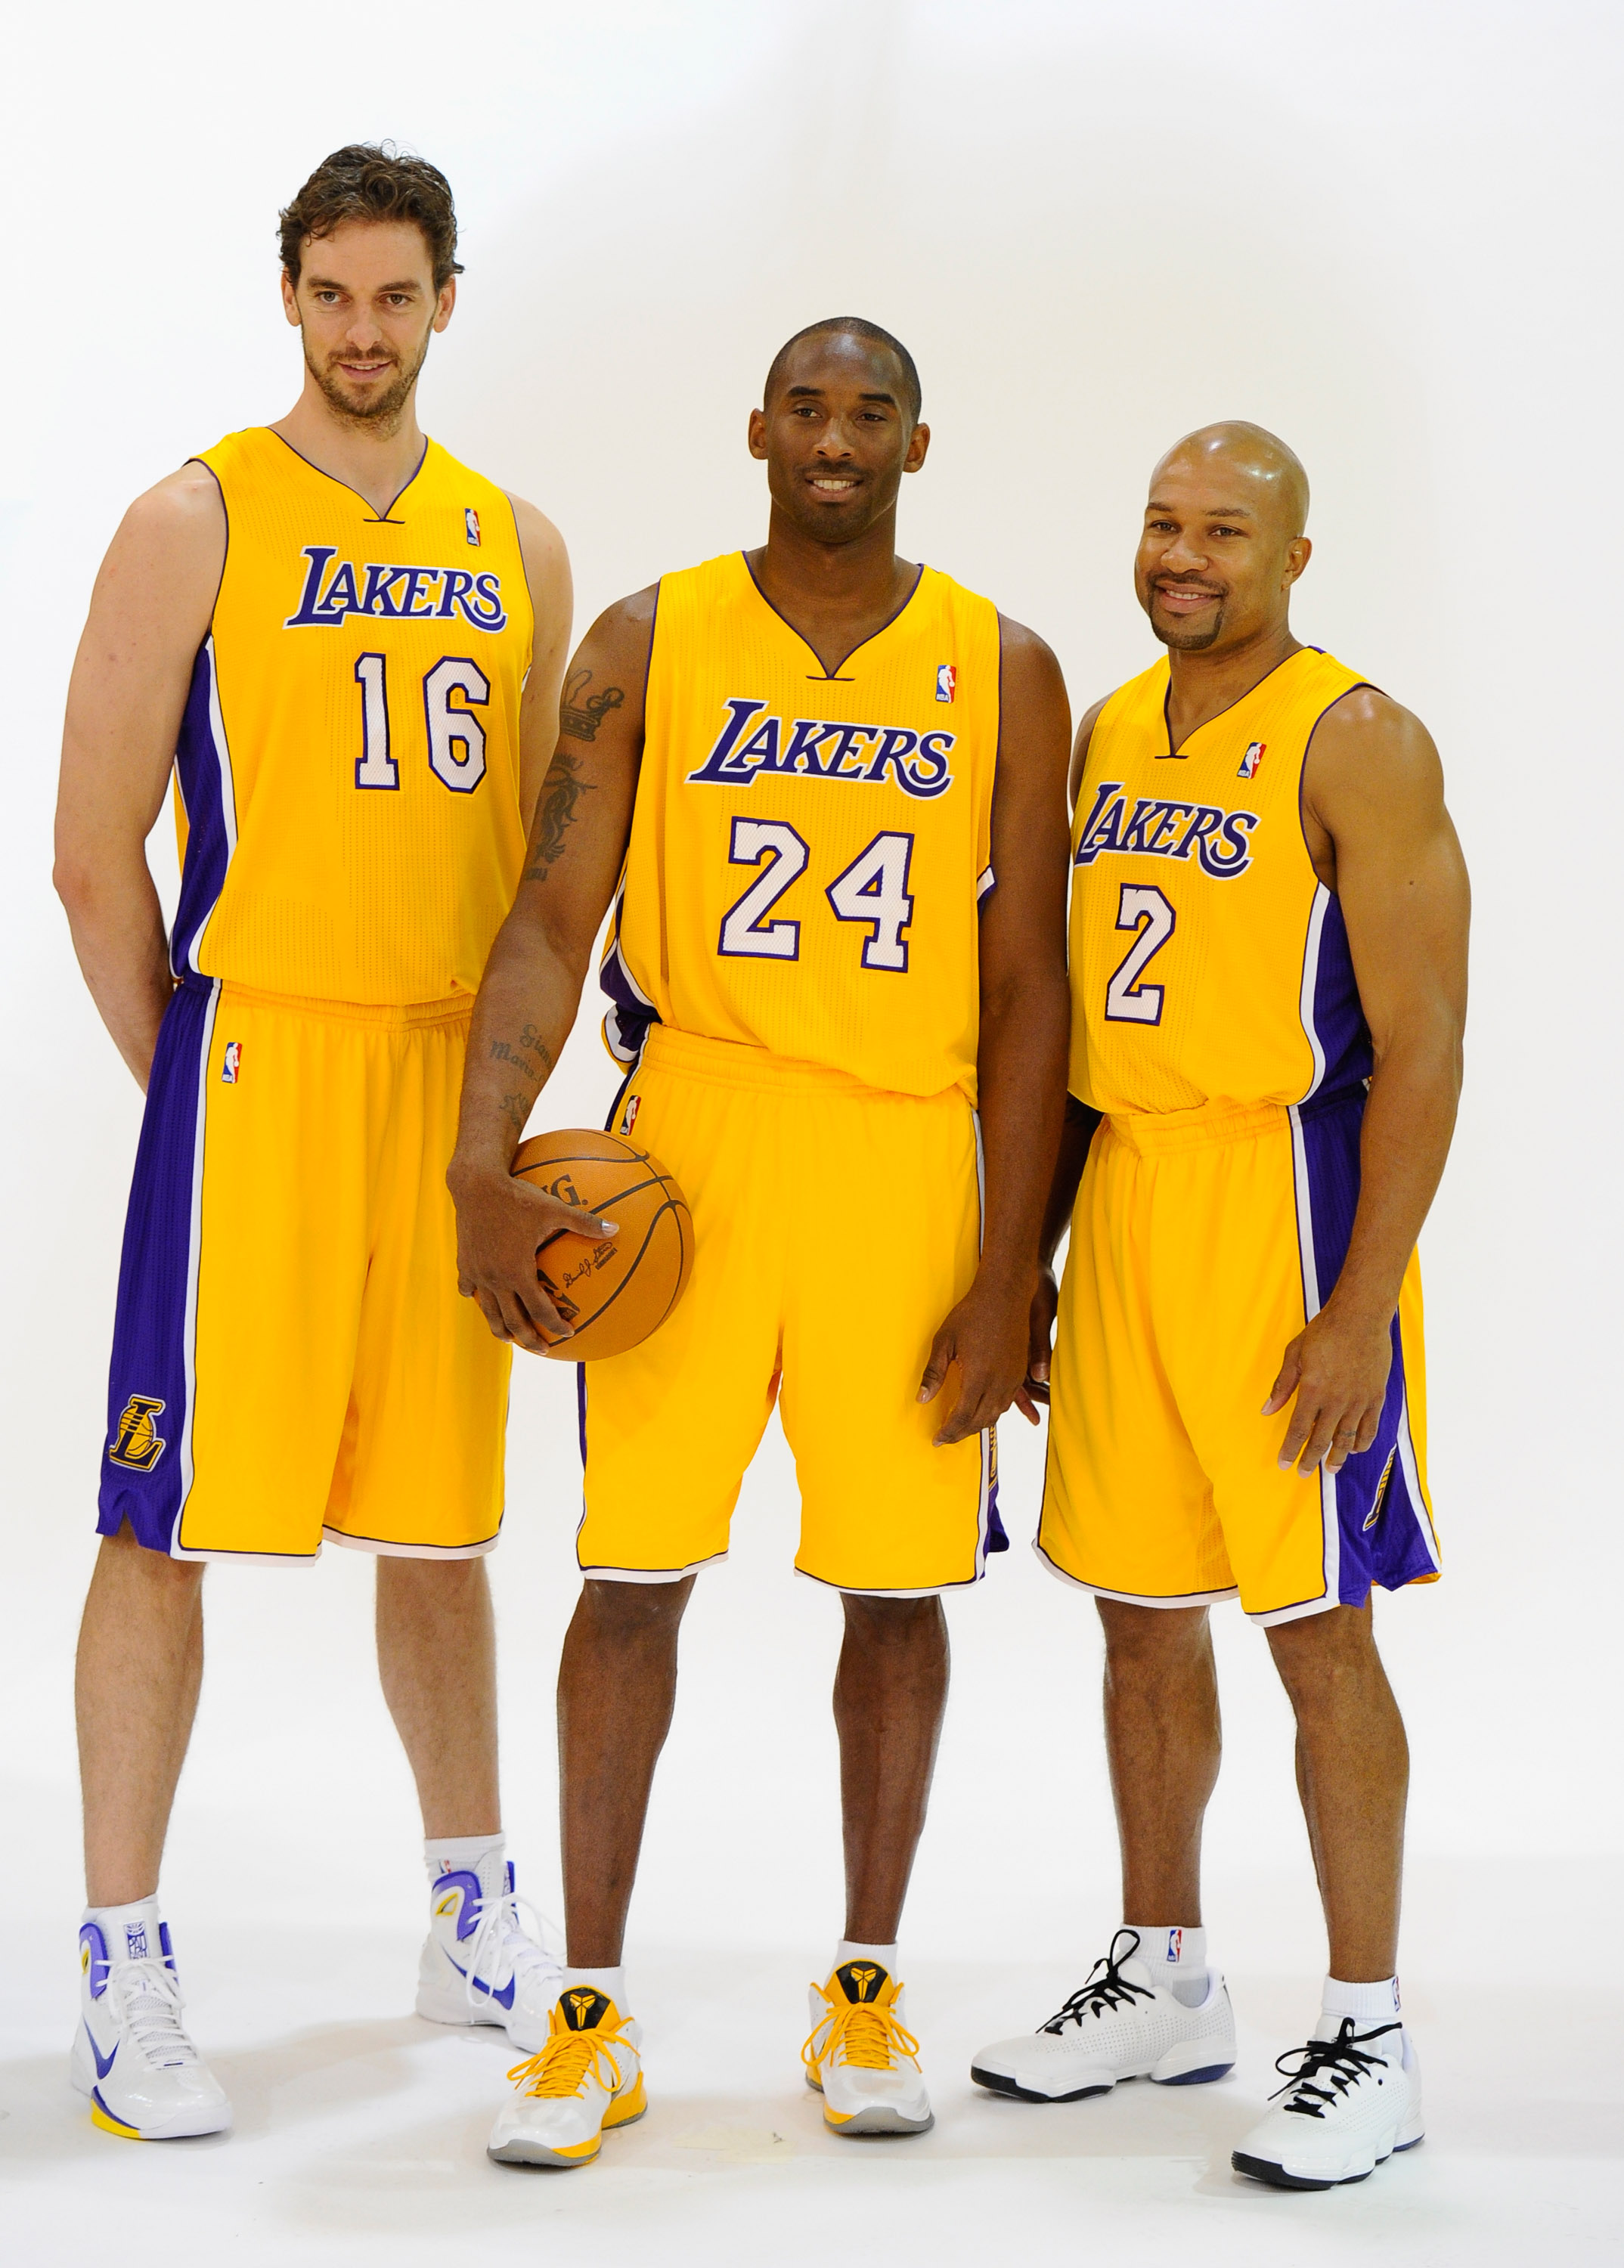 The Lakers are led by veteran players Pau Gasol, Kobe Bryant, and Derek Fisher